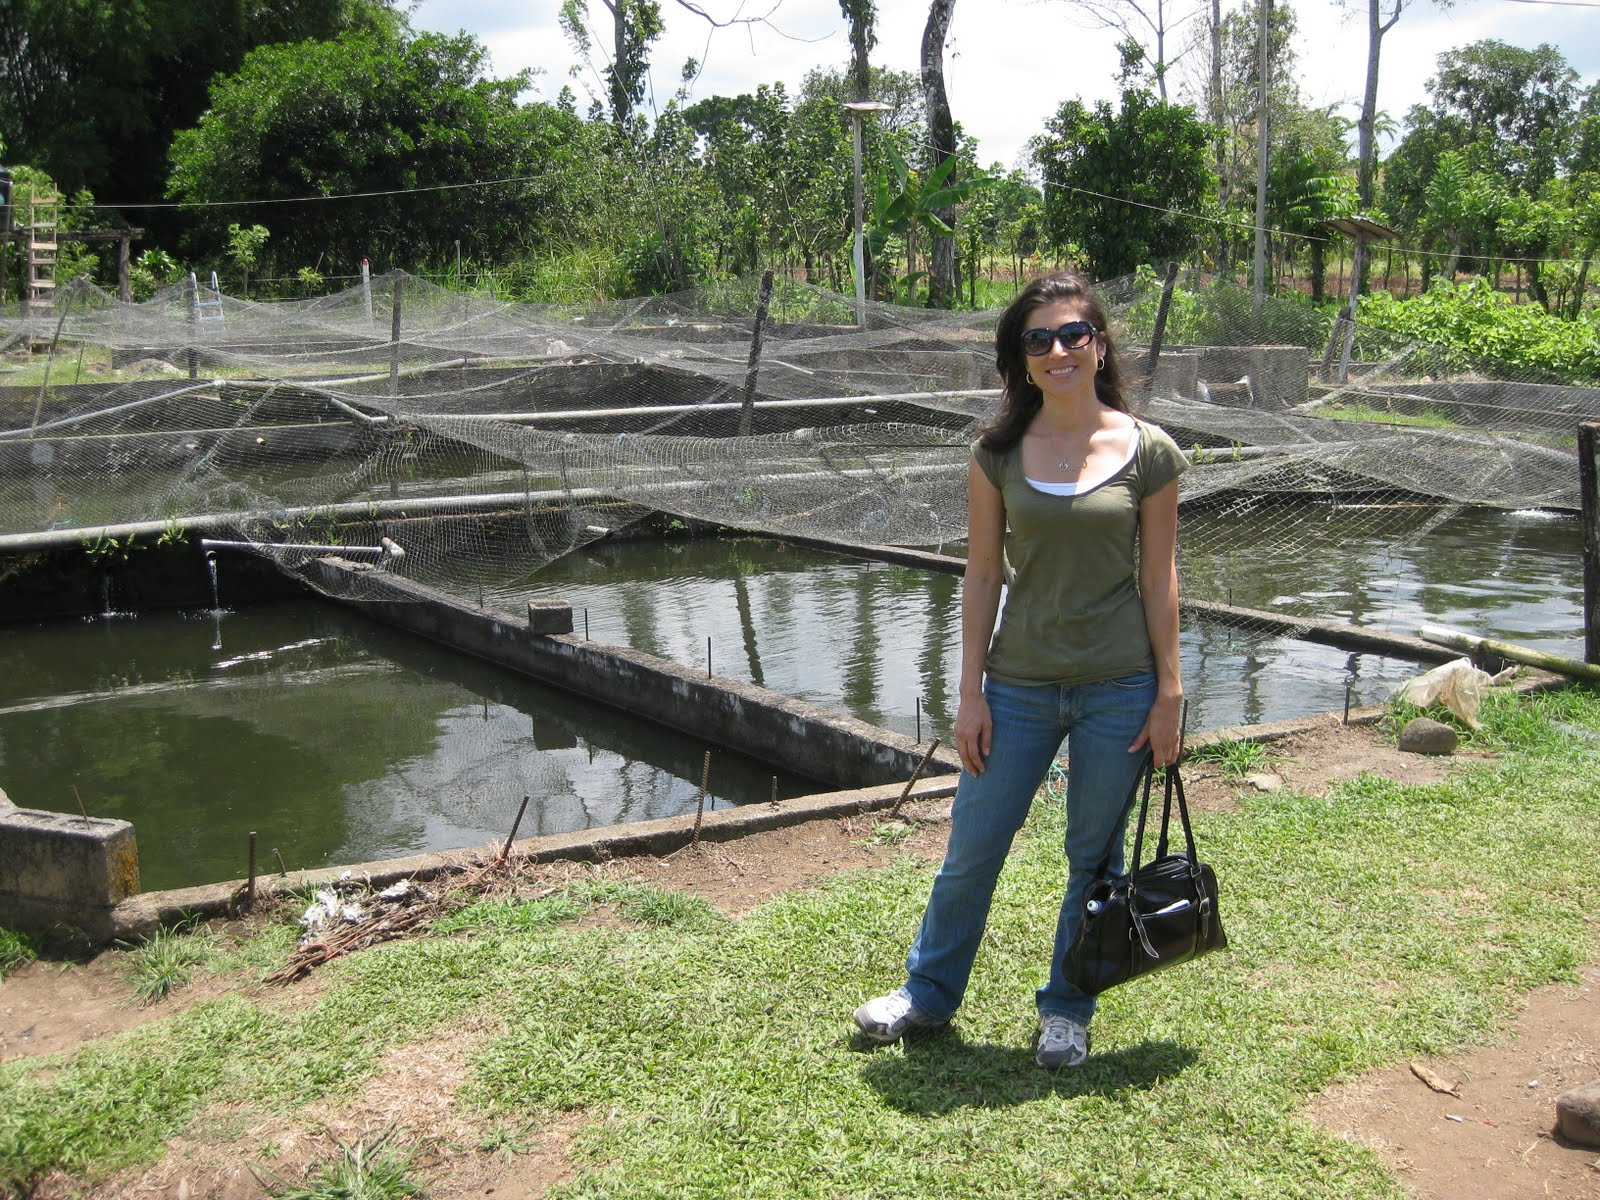 costa rica blogging: tilapia farming in costa rica